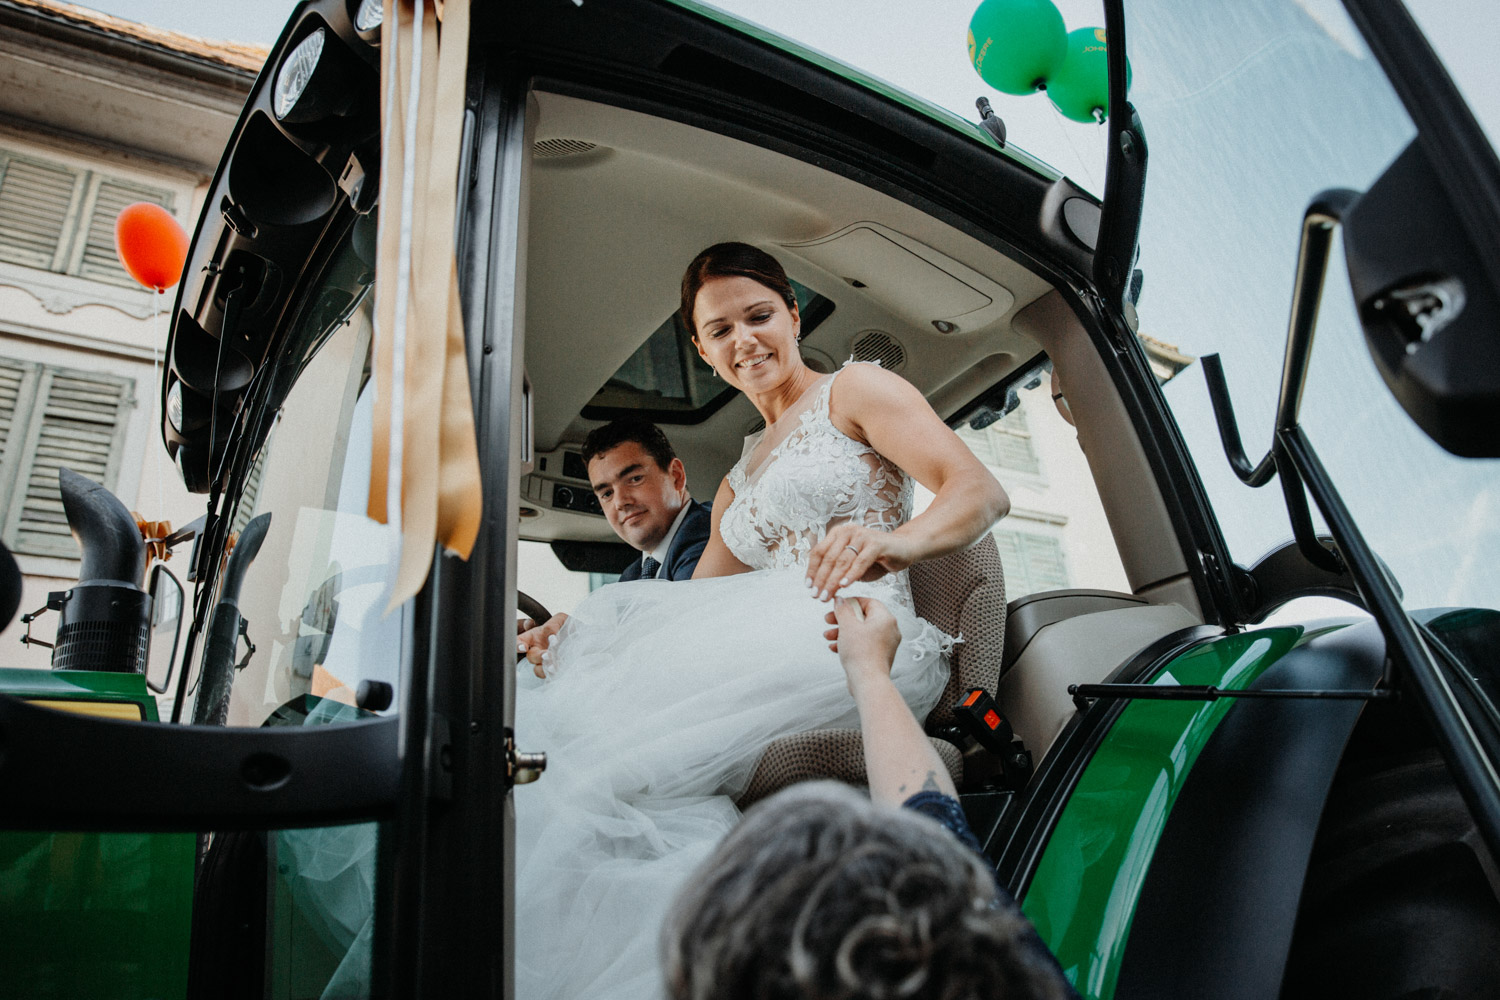 wedding photographer in St. Ursus Cathedral Solothurn Switzerland documentary style Swiss wedding photographer couple shoot portraits tractor